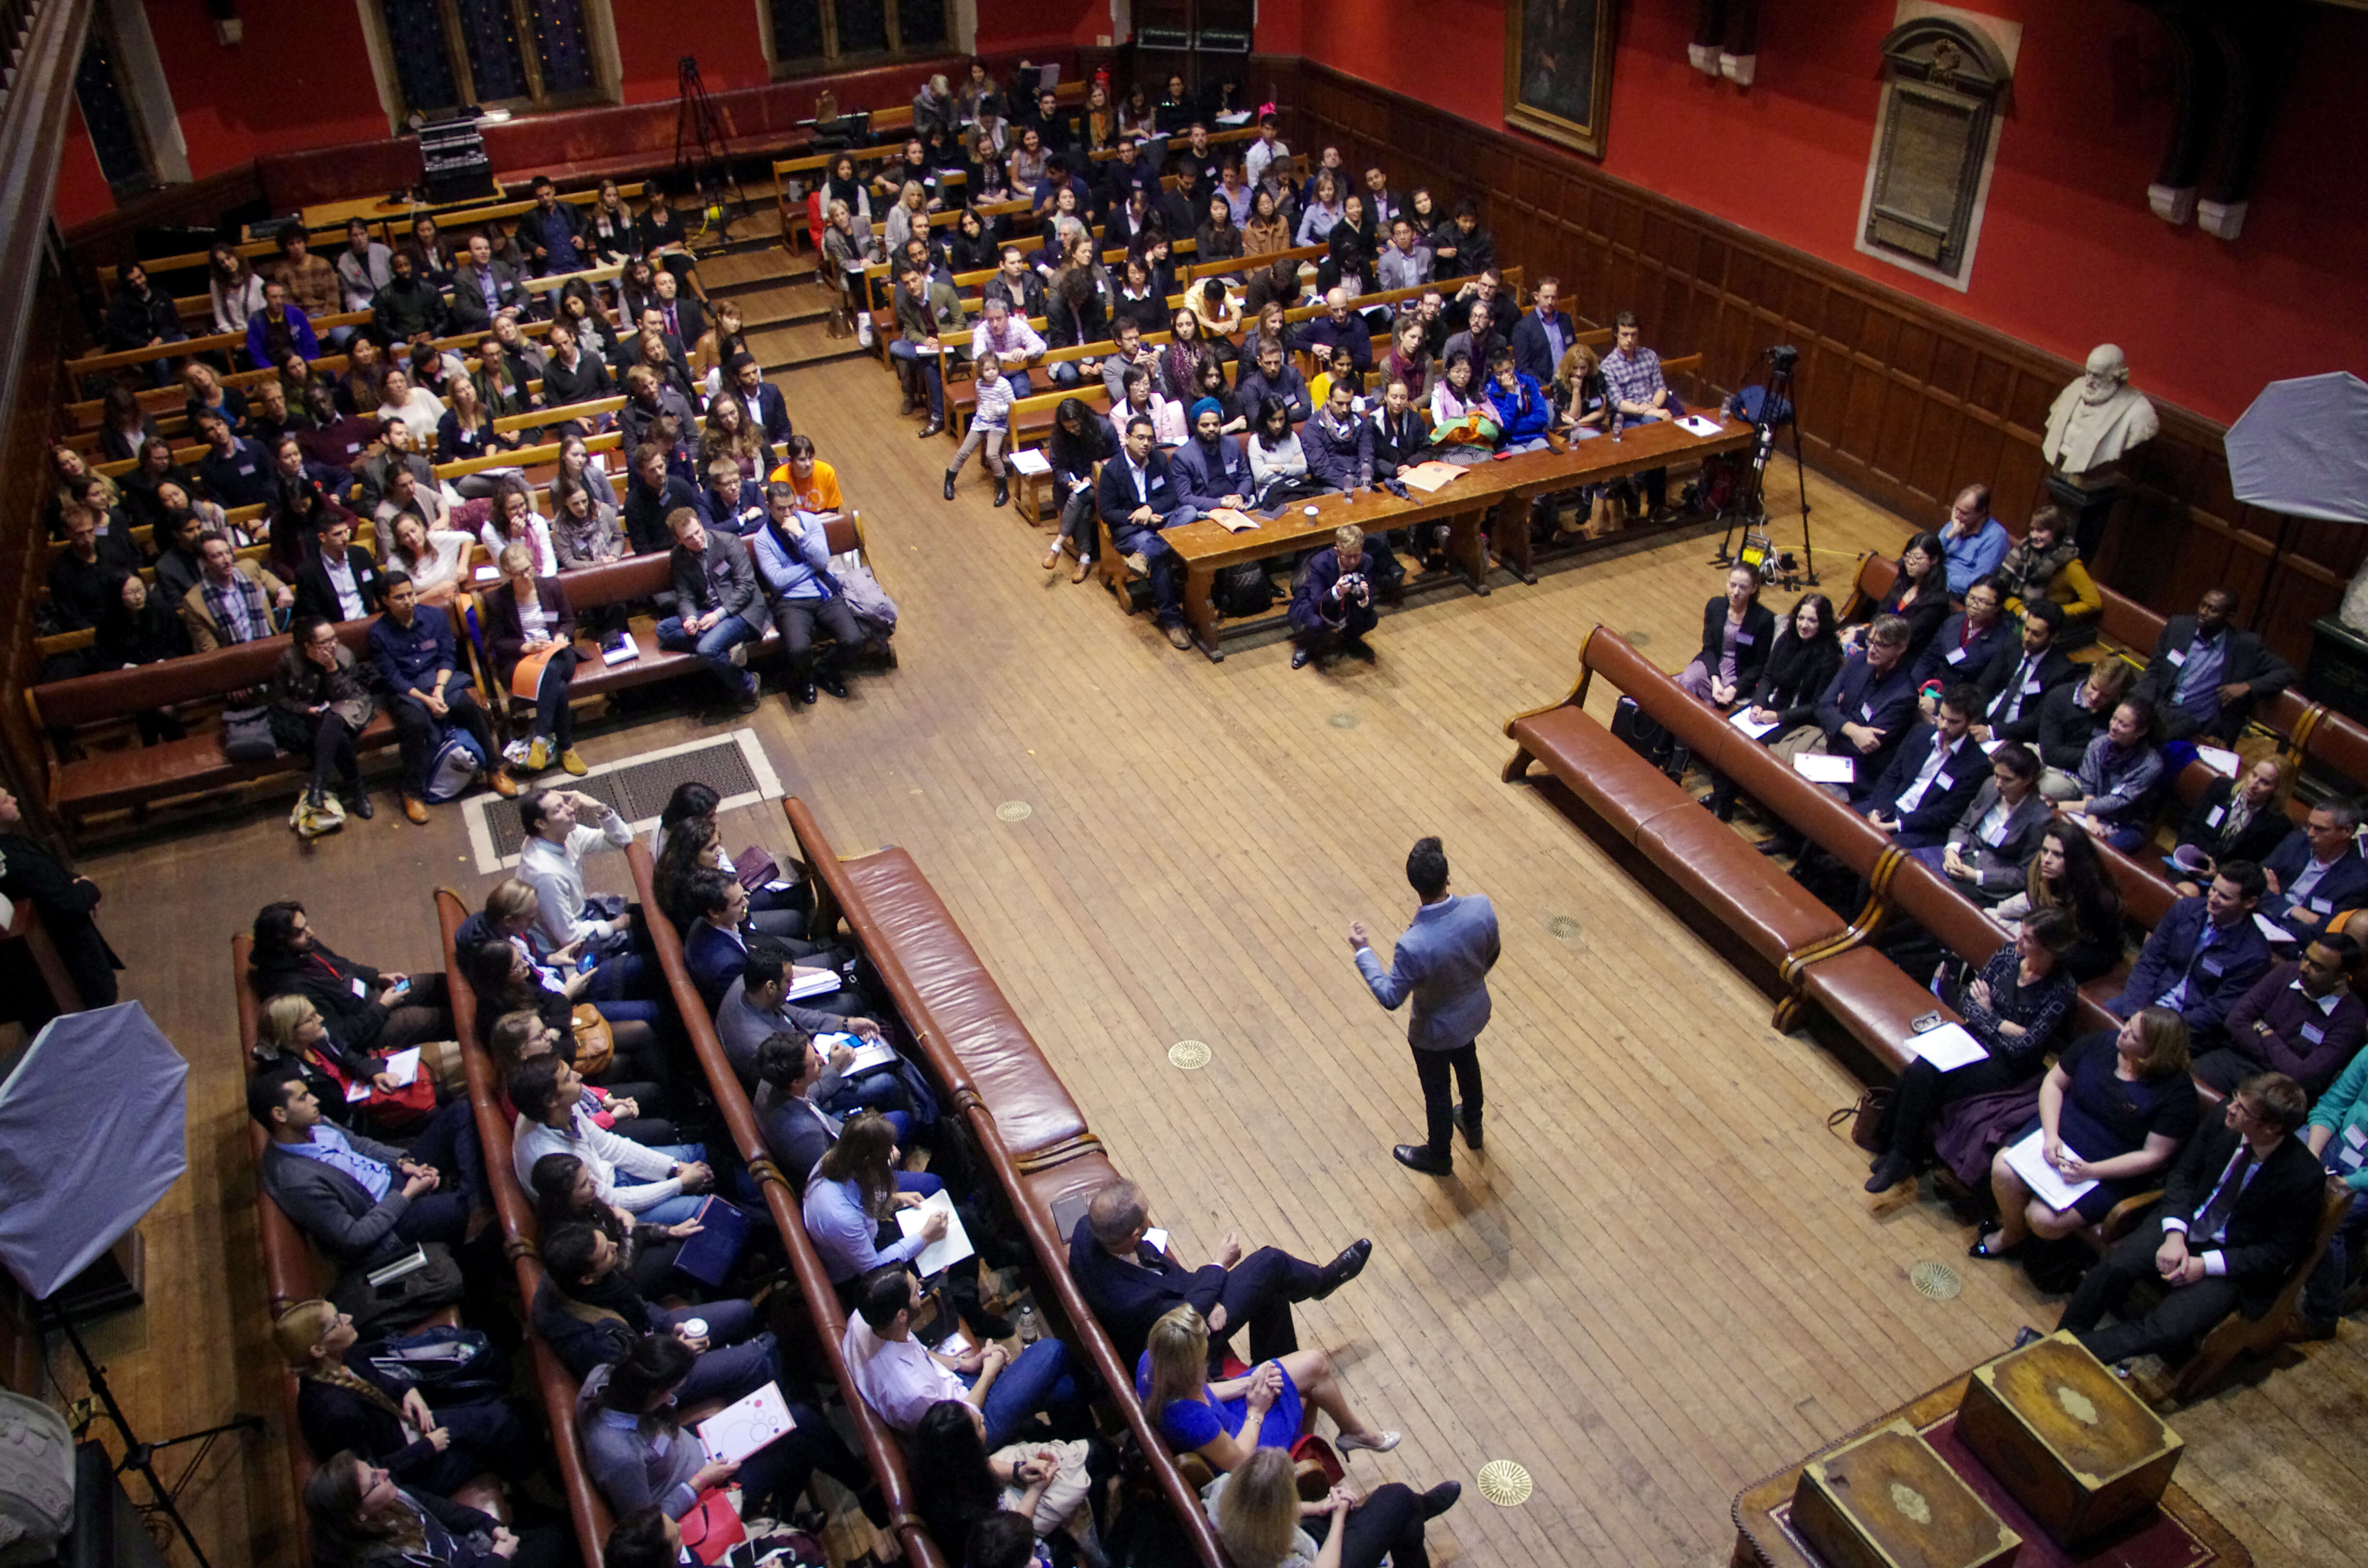 Oxford Union Debating Chamber